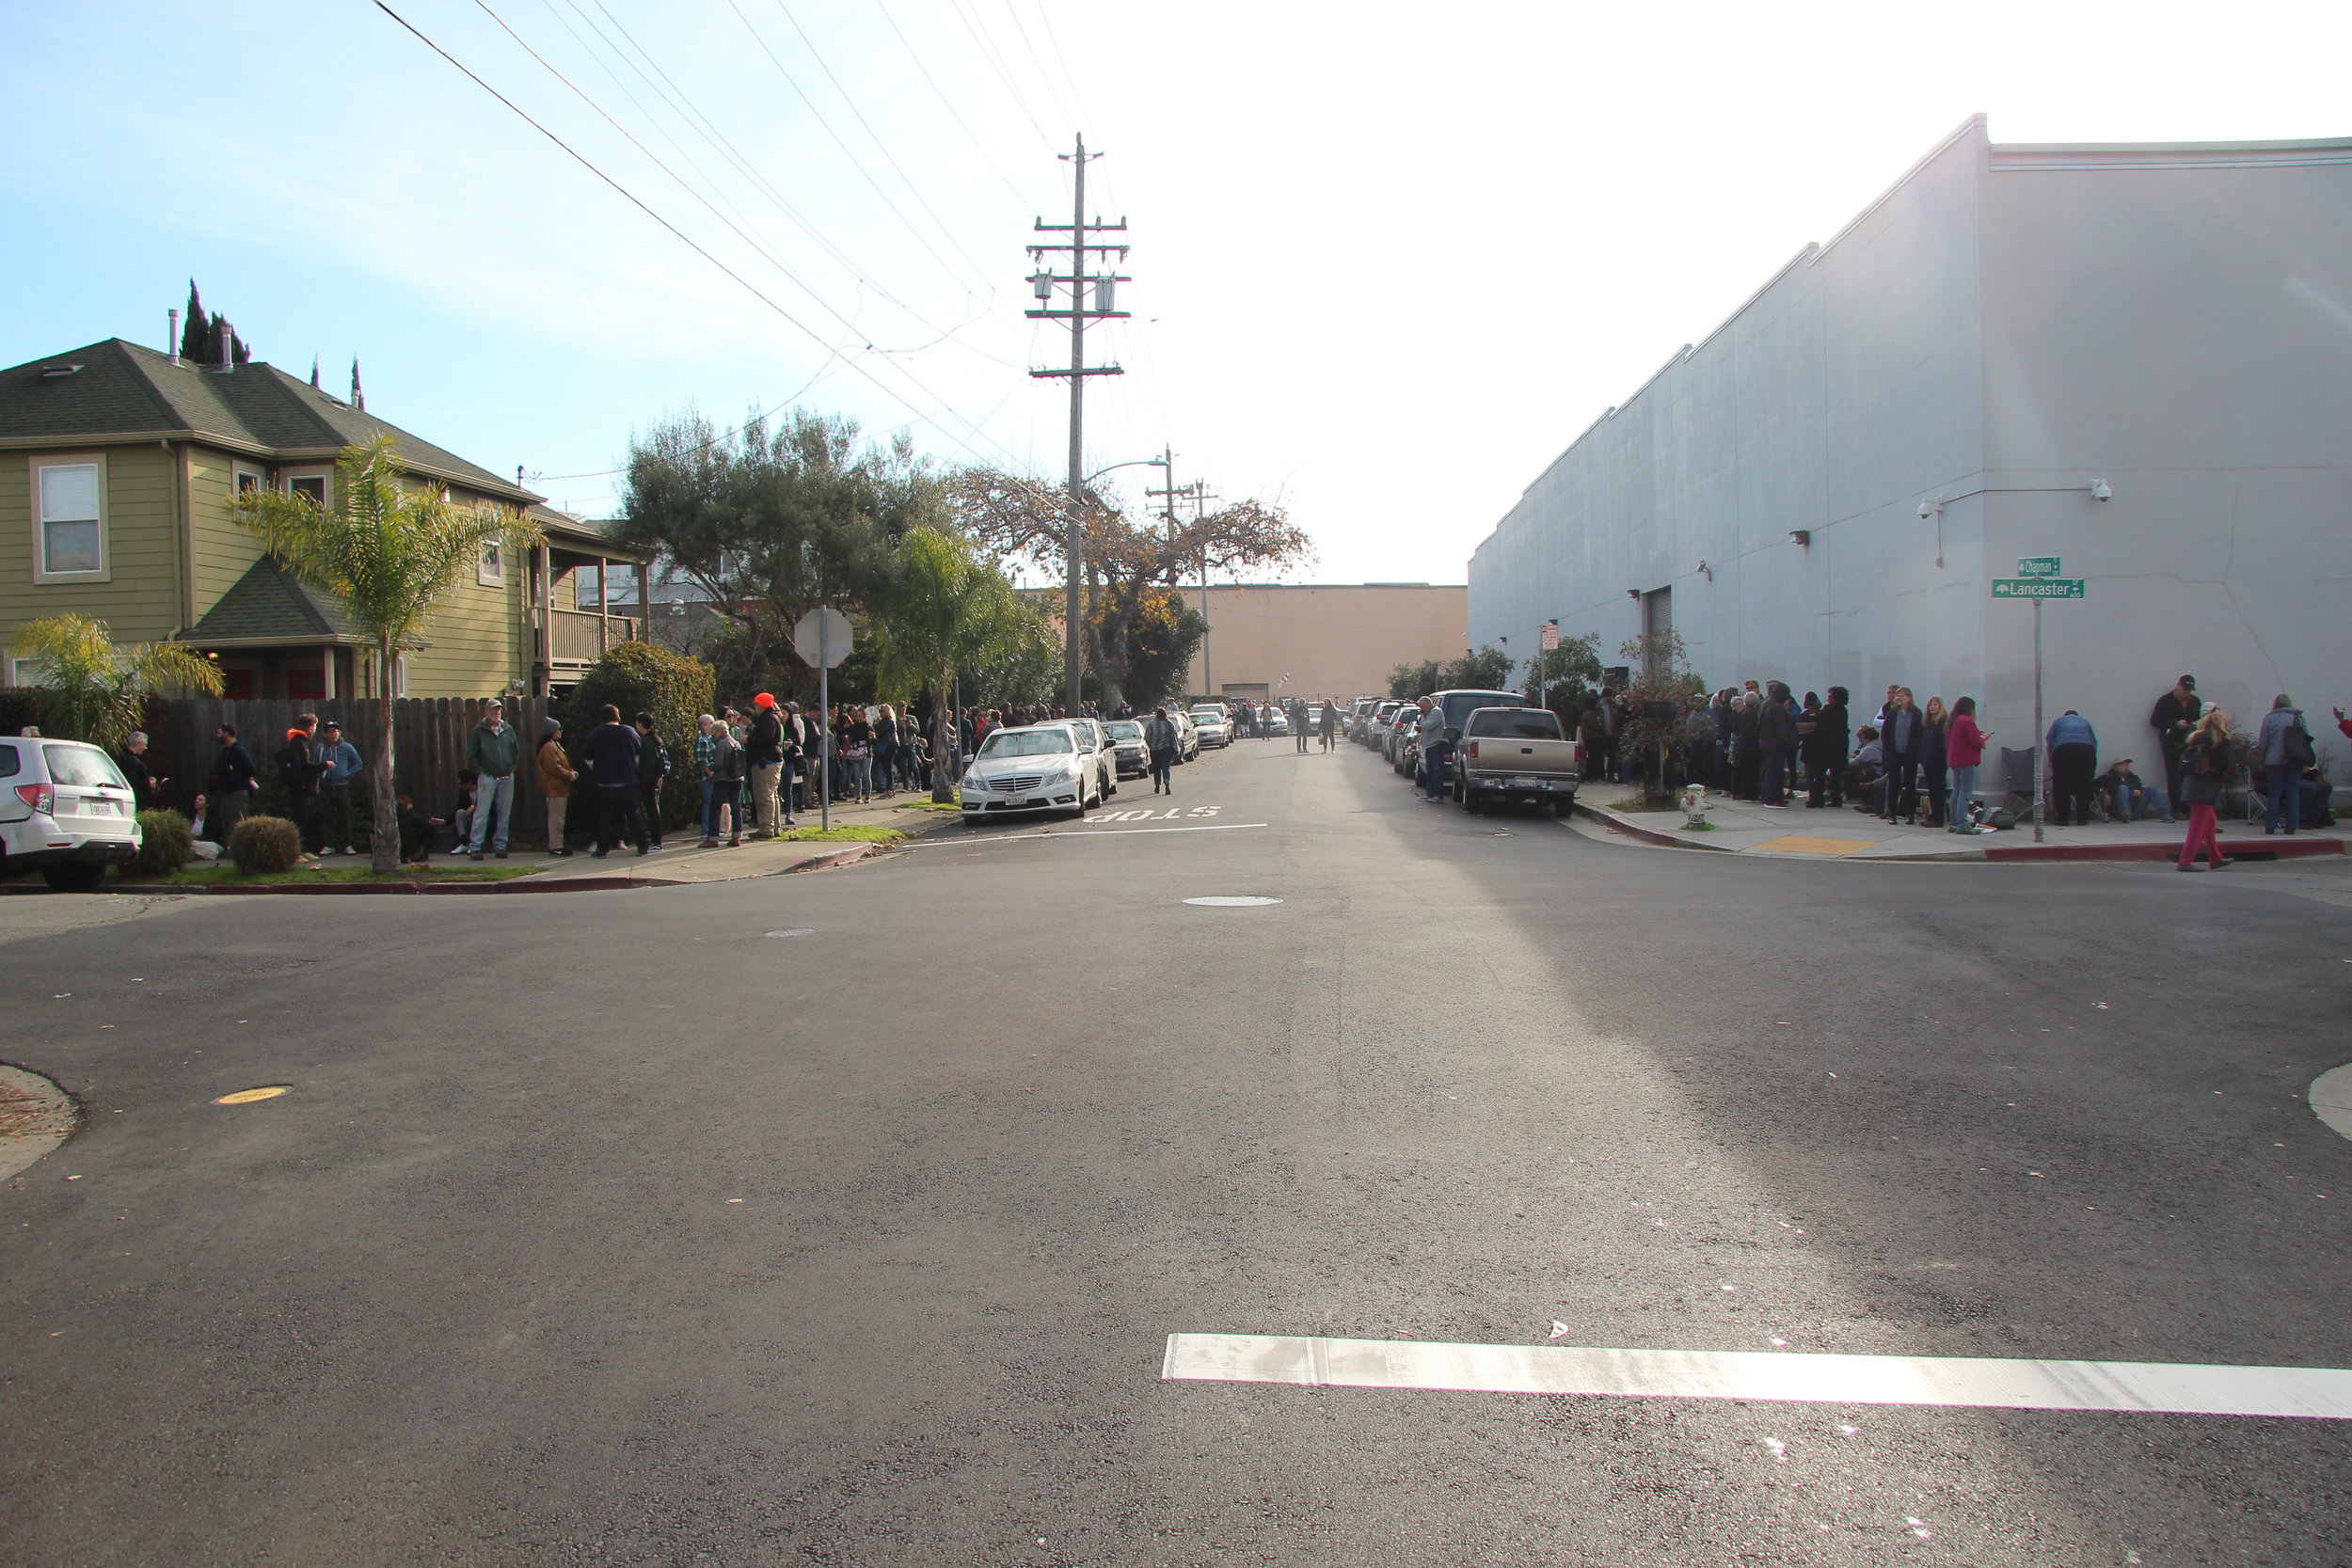 Mid-line of the White Elephant Preview Sale.